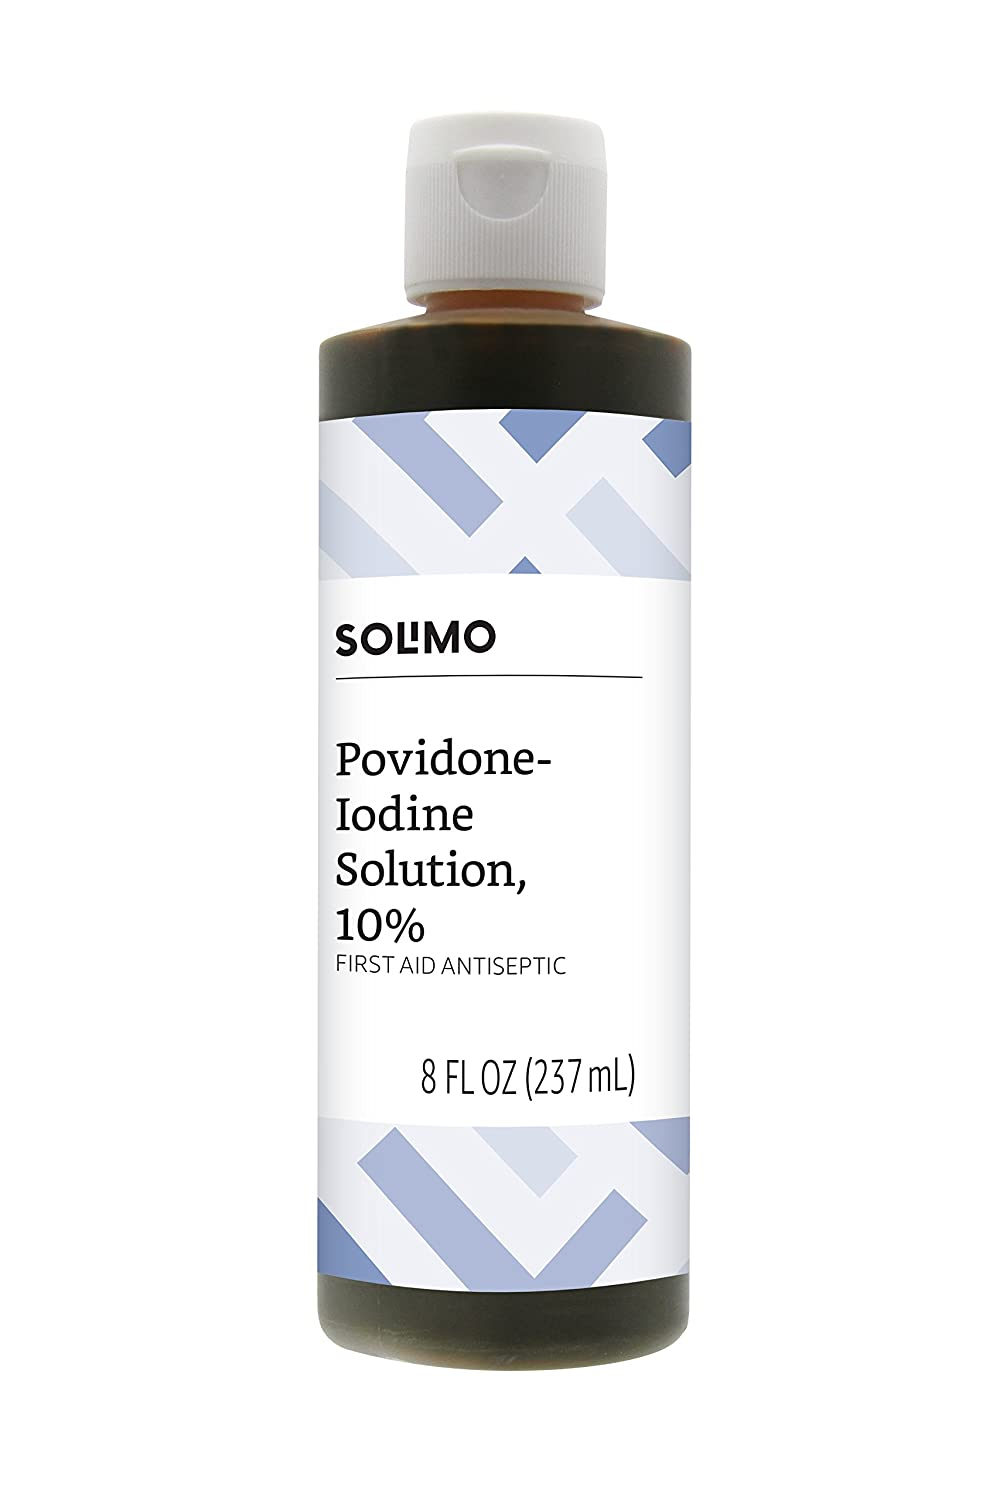 Amazon Brand - Solimo 10% Povidone Iodine Solution First Aid Antiseptic, 8 Fluid Ounce